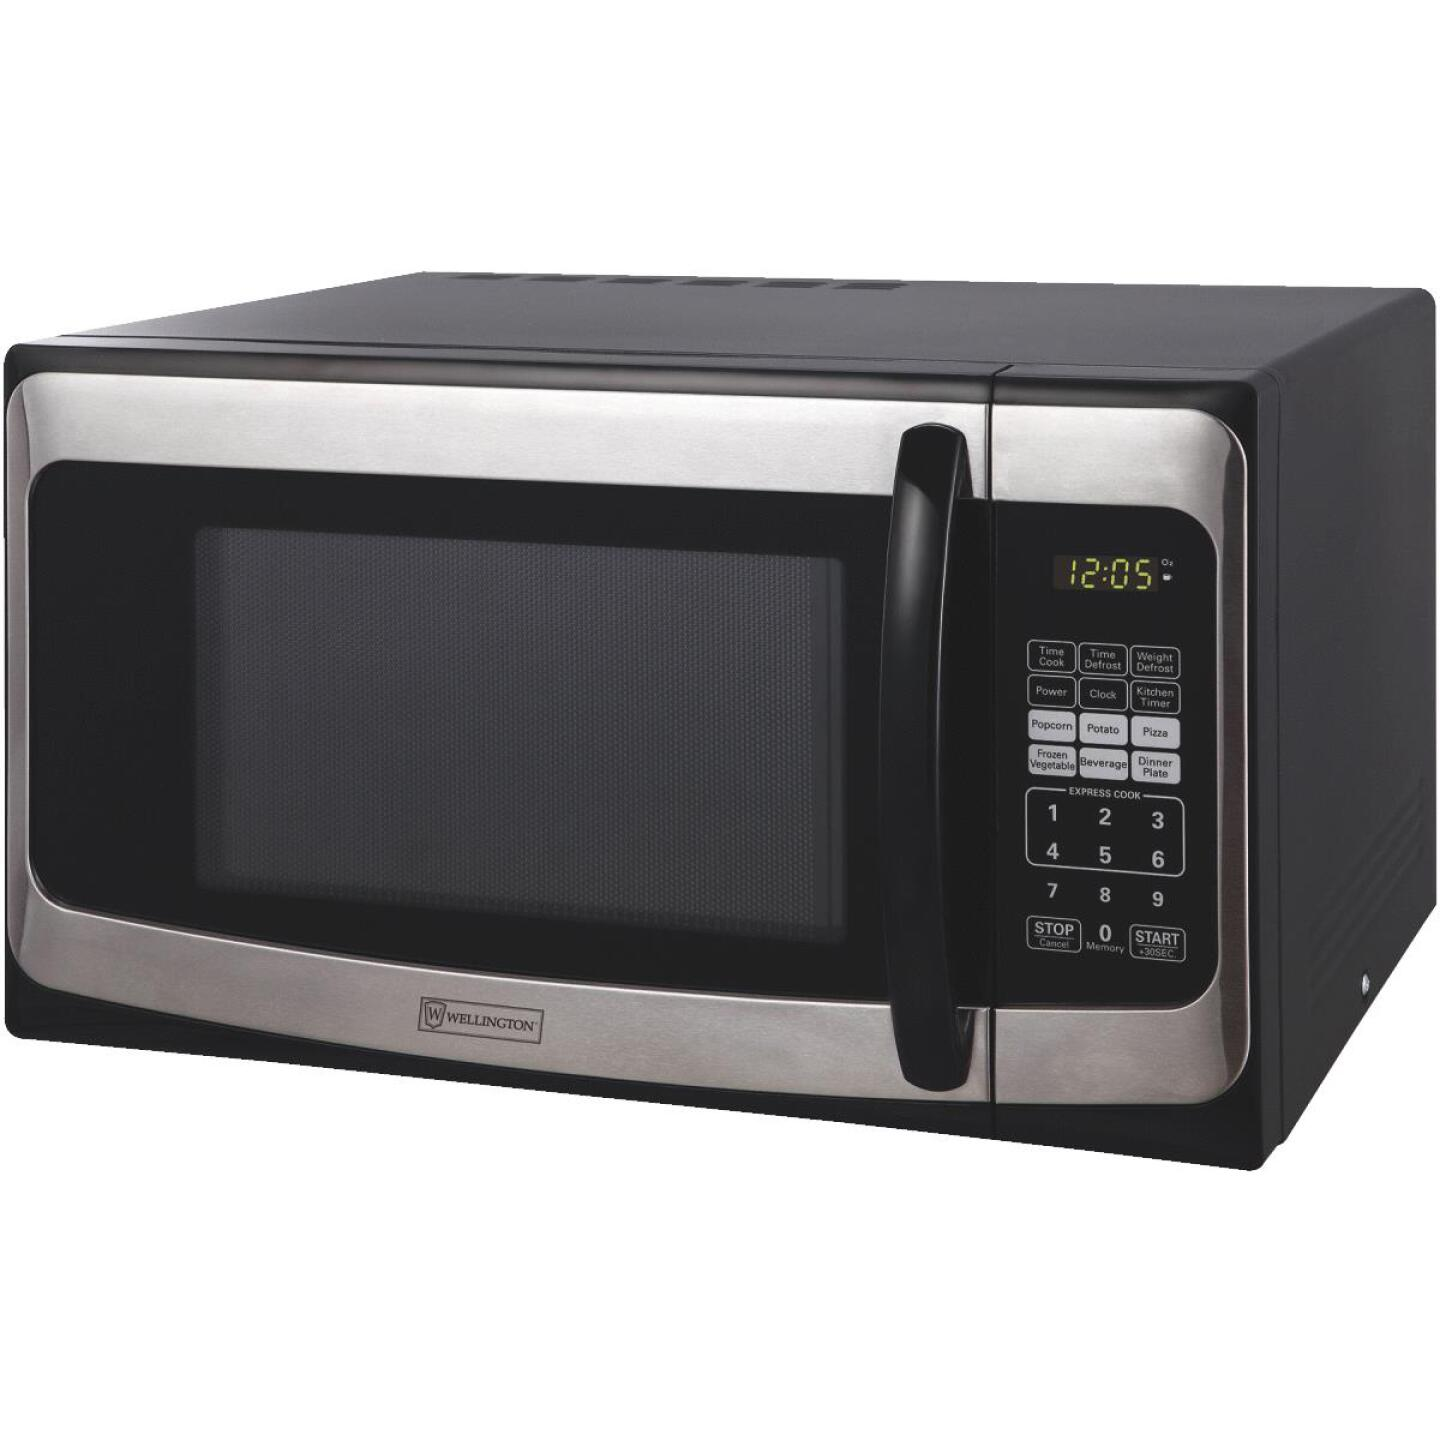 Perfect Aire 1.1 Cu. Ft. Black Countertop Microwave Image 1